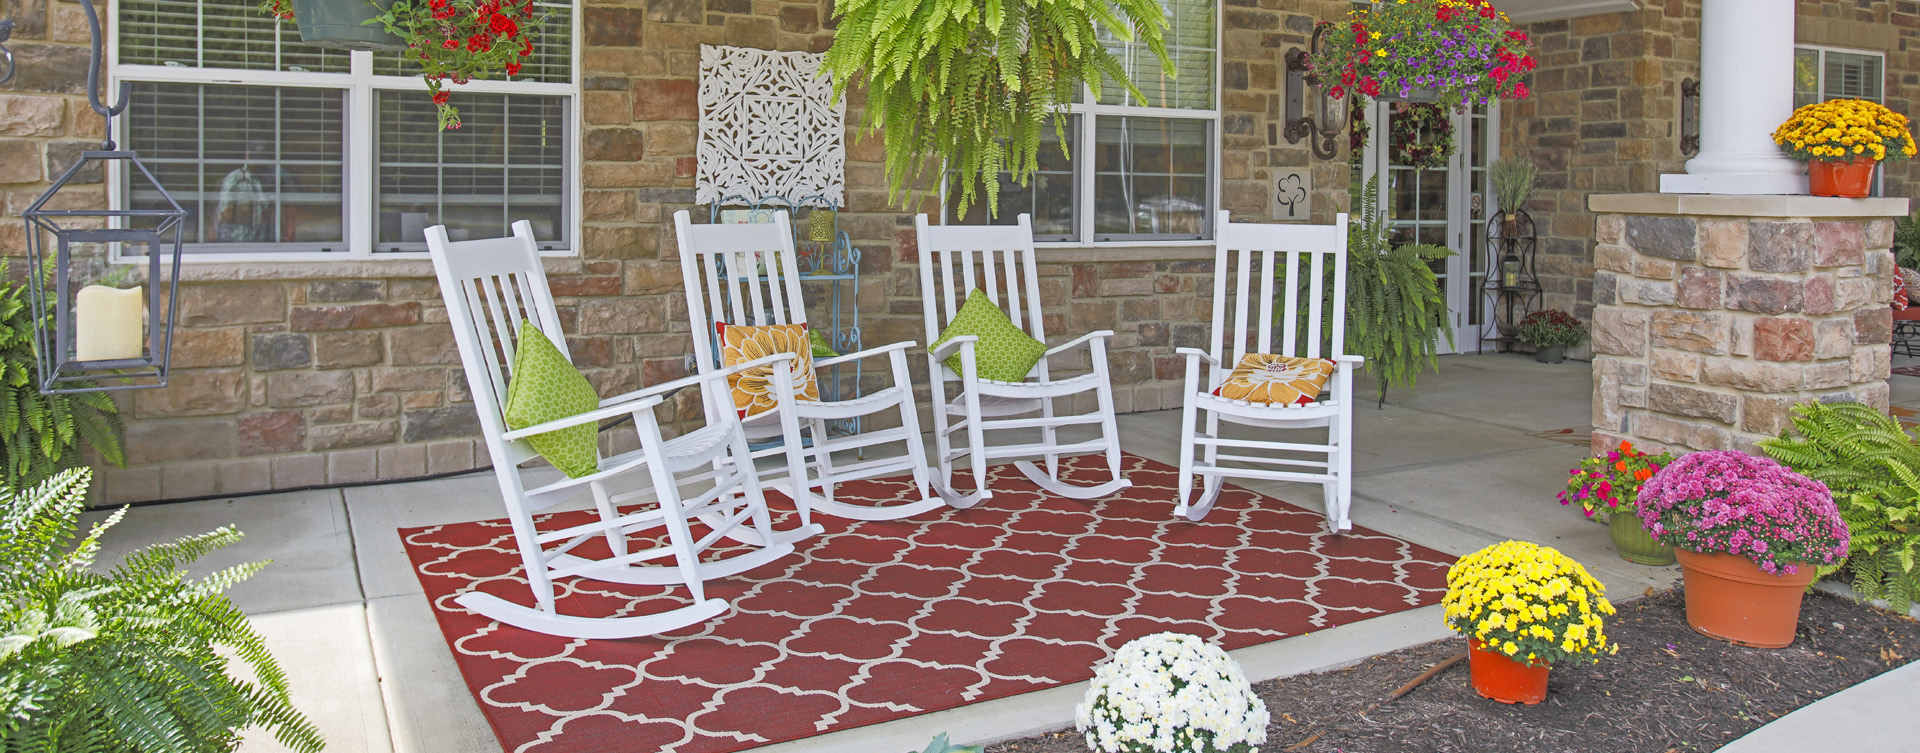 Enjoy conversations with friends on the porch at Bickford of Carmel